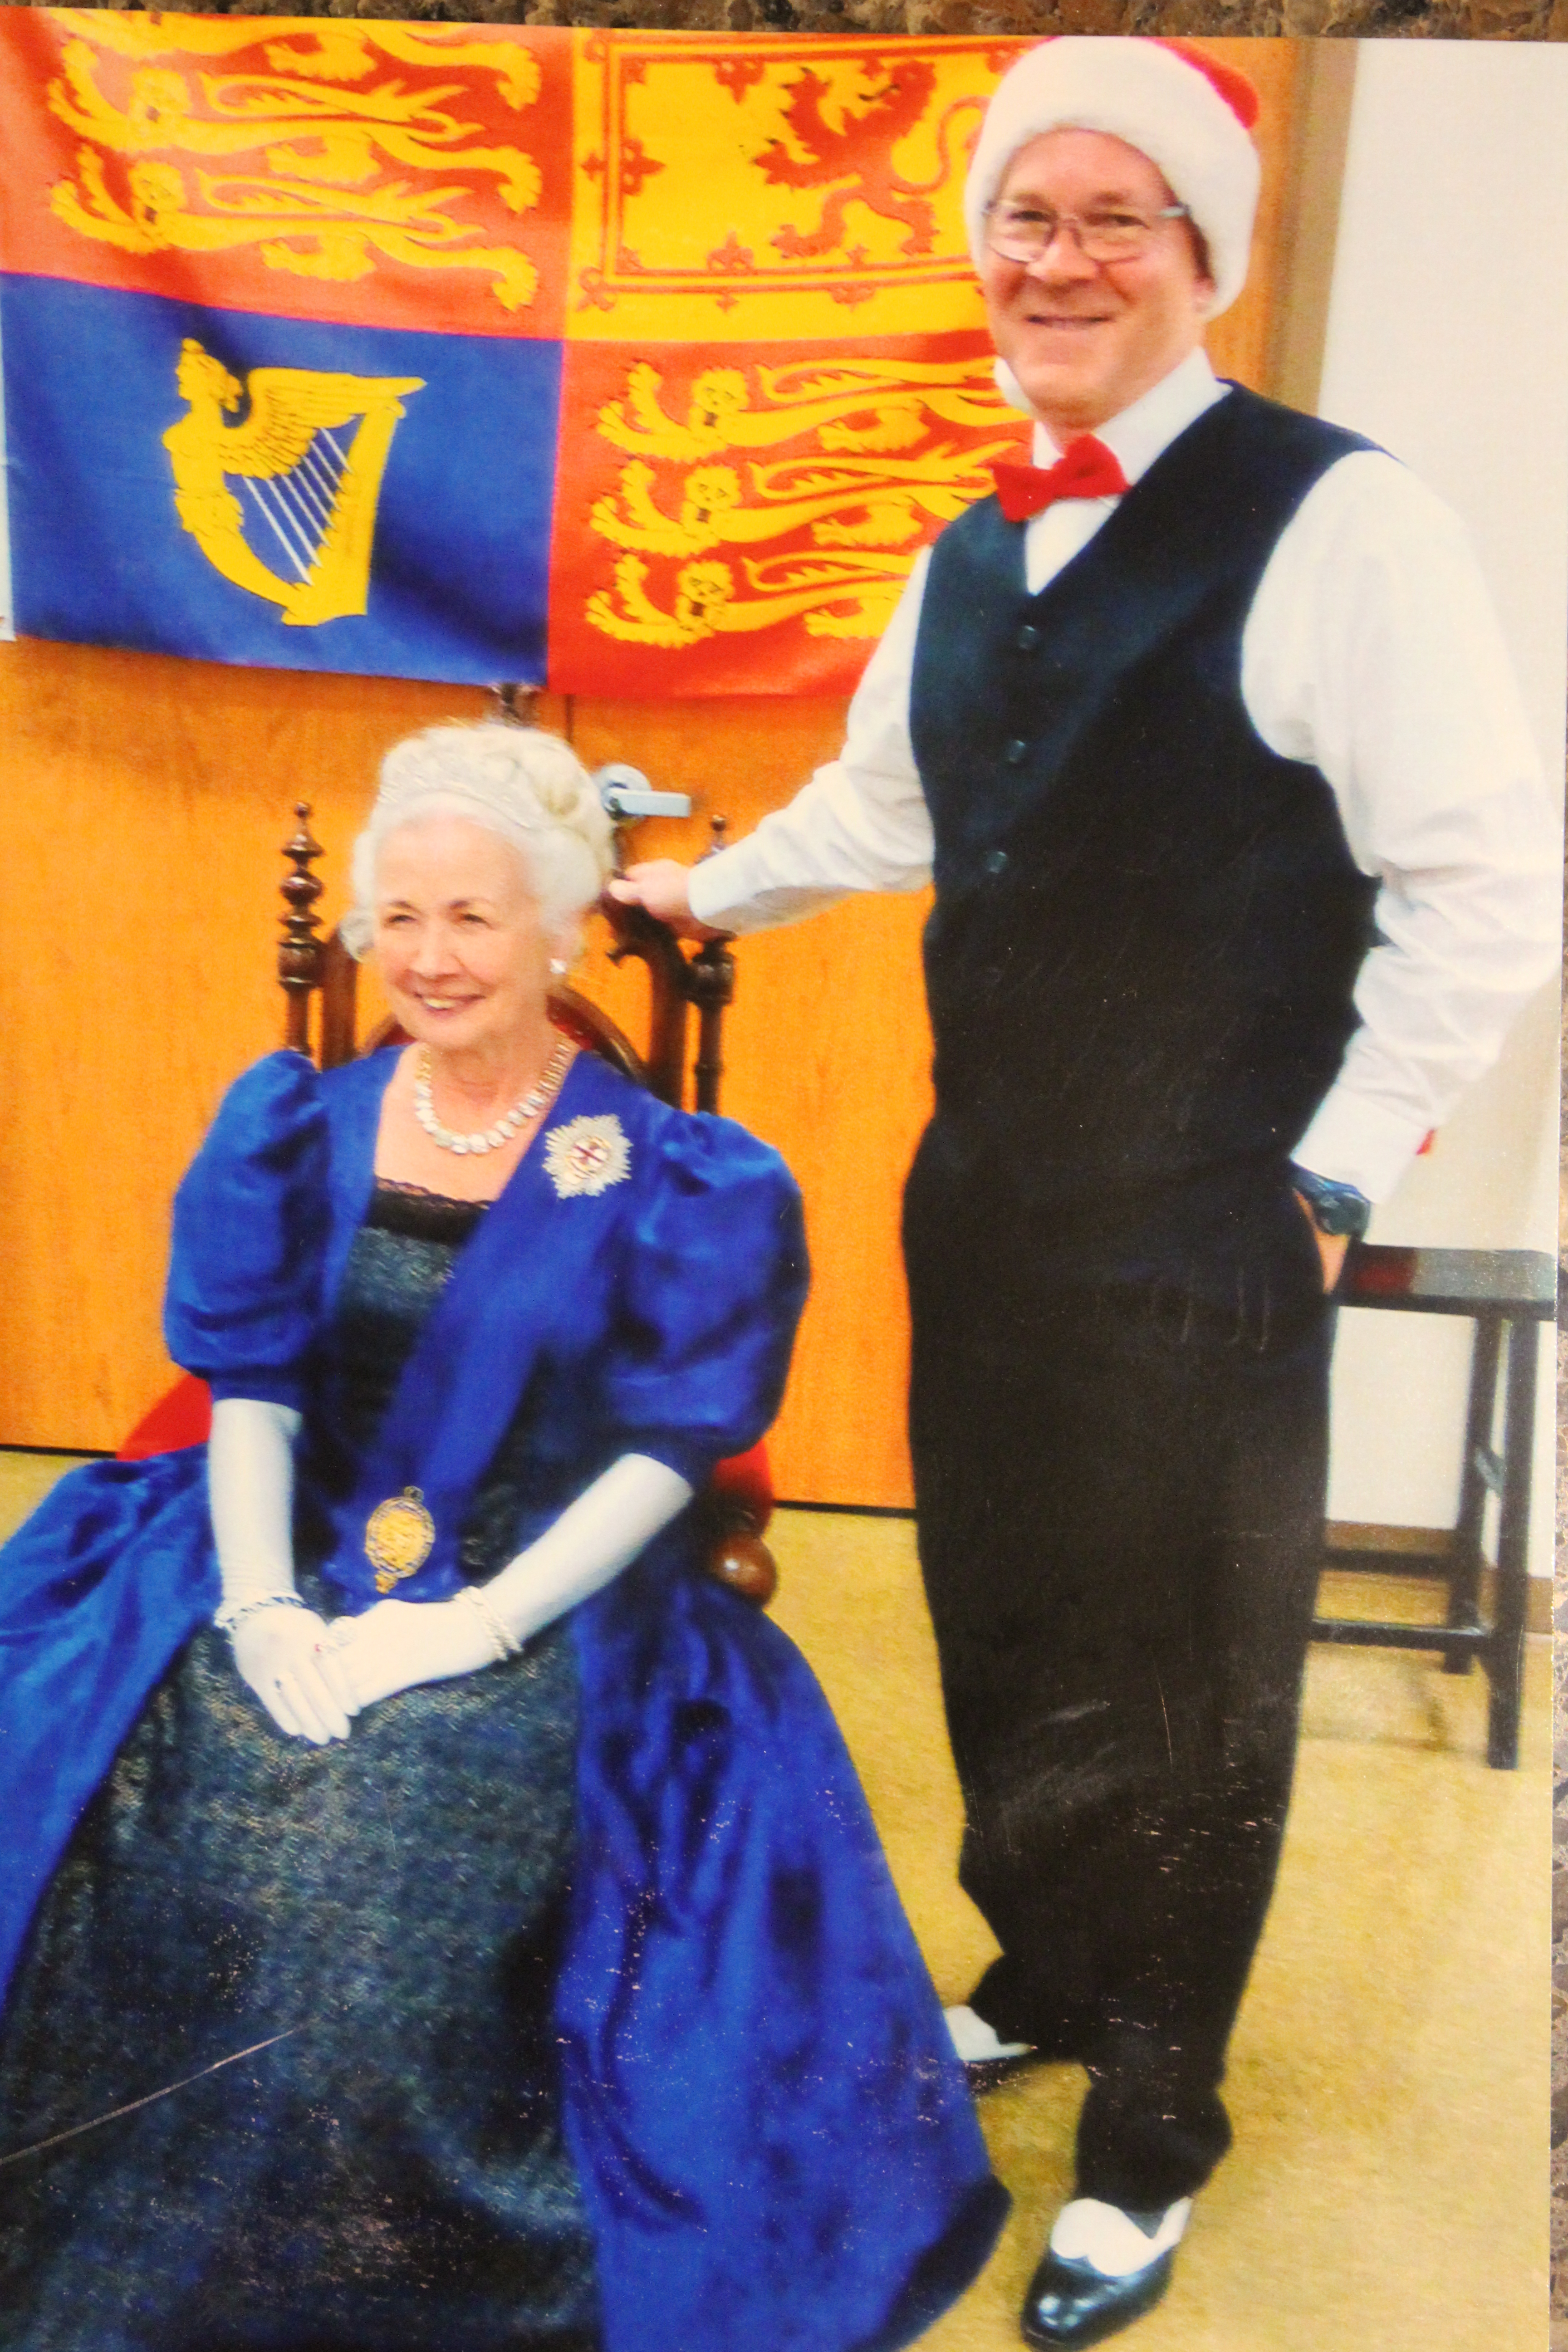 Queen Victoria and her royal bard